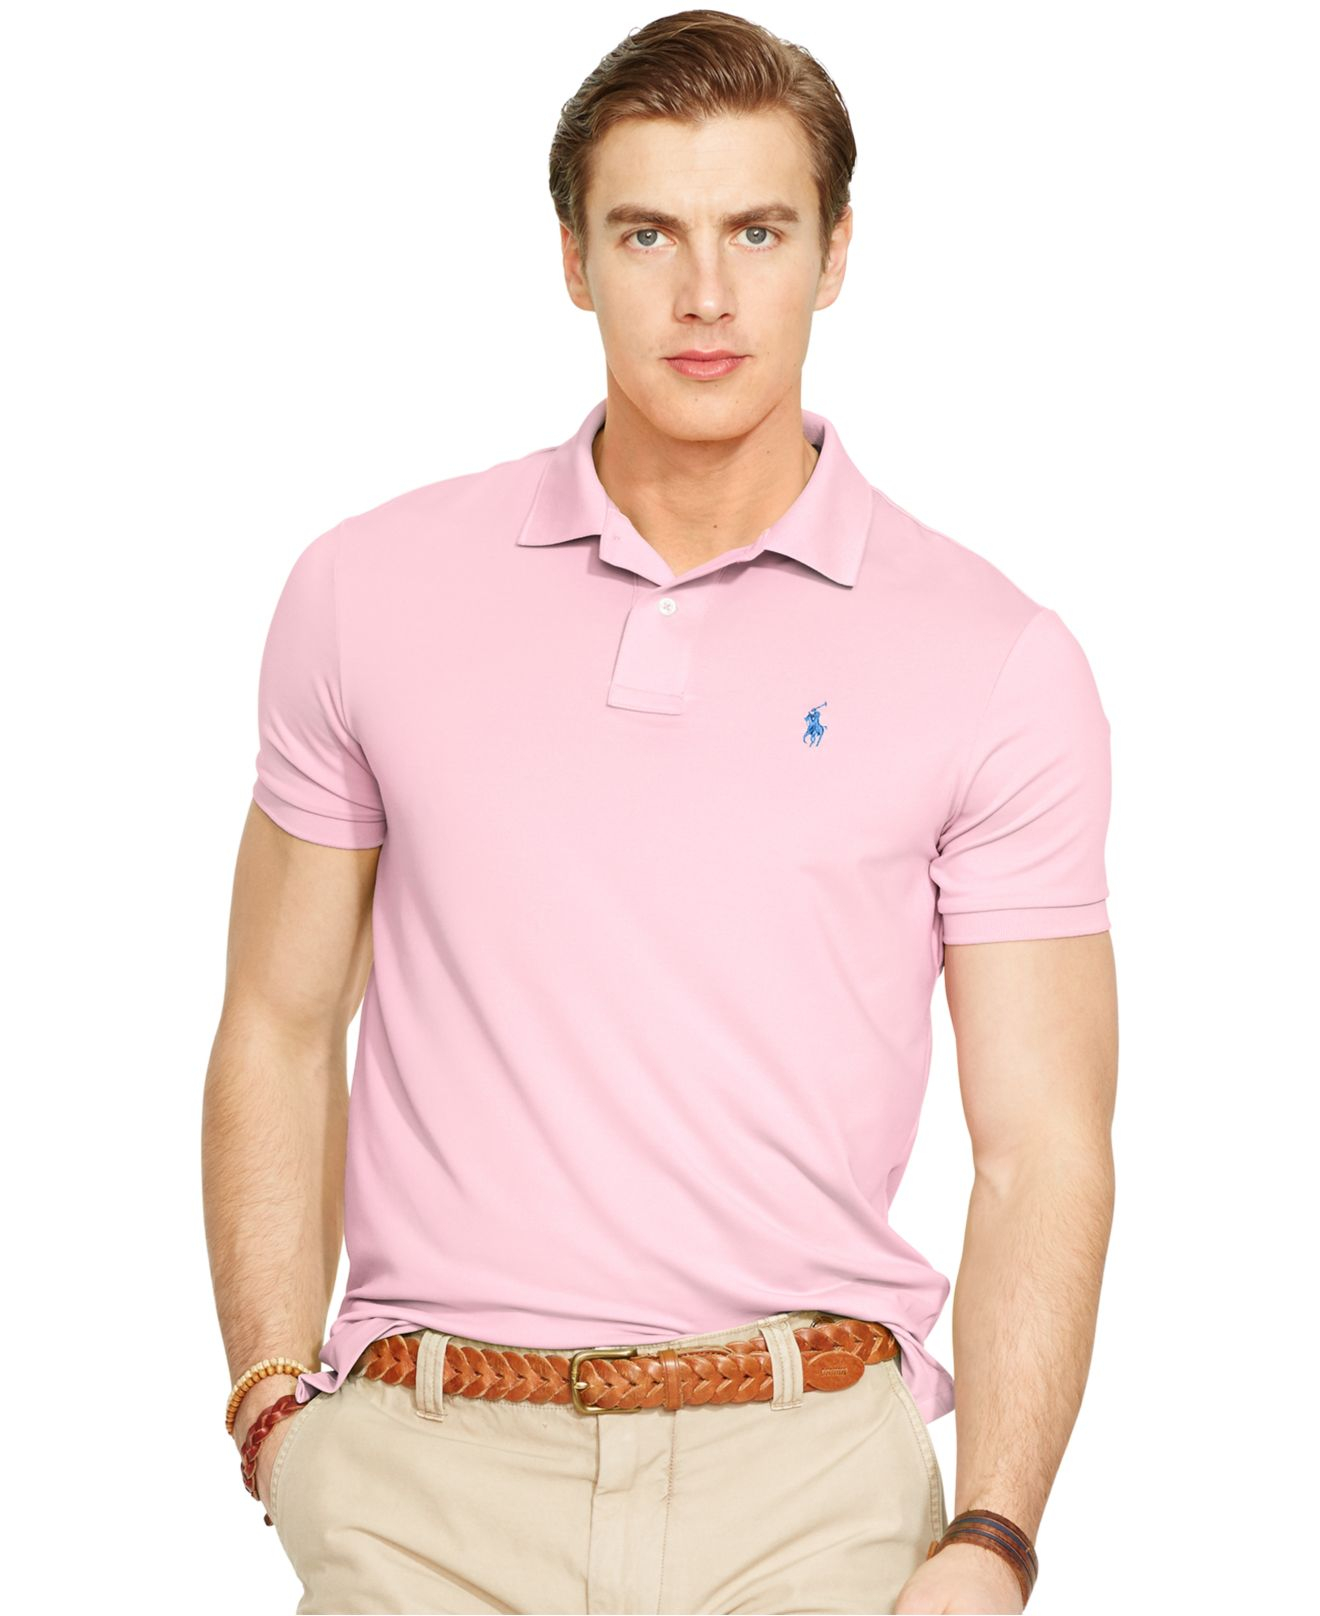 Lyst polo ralph lauren performance jersey polo shirt in Man in polo shirt